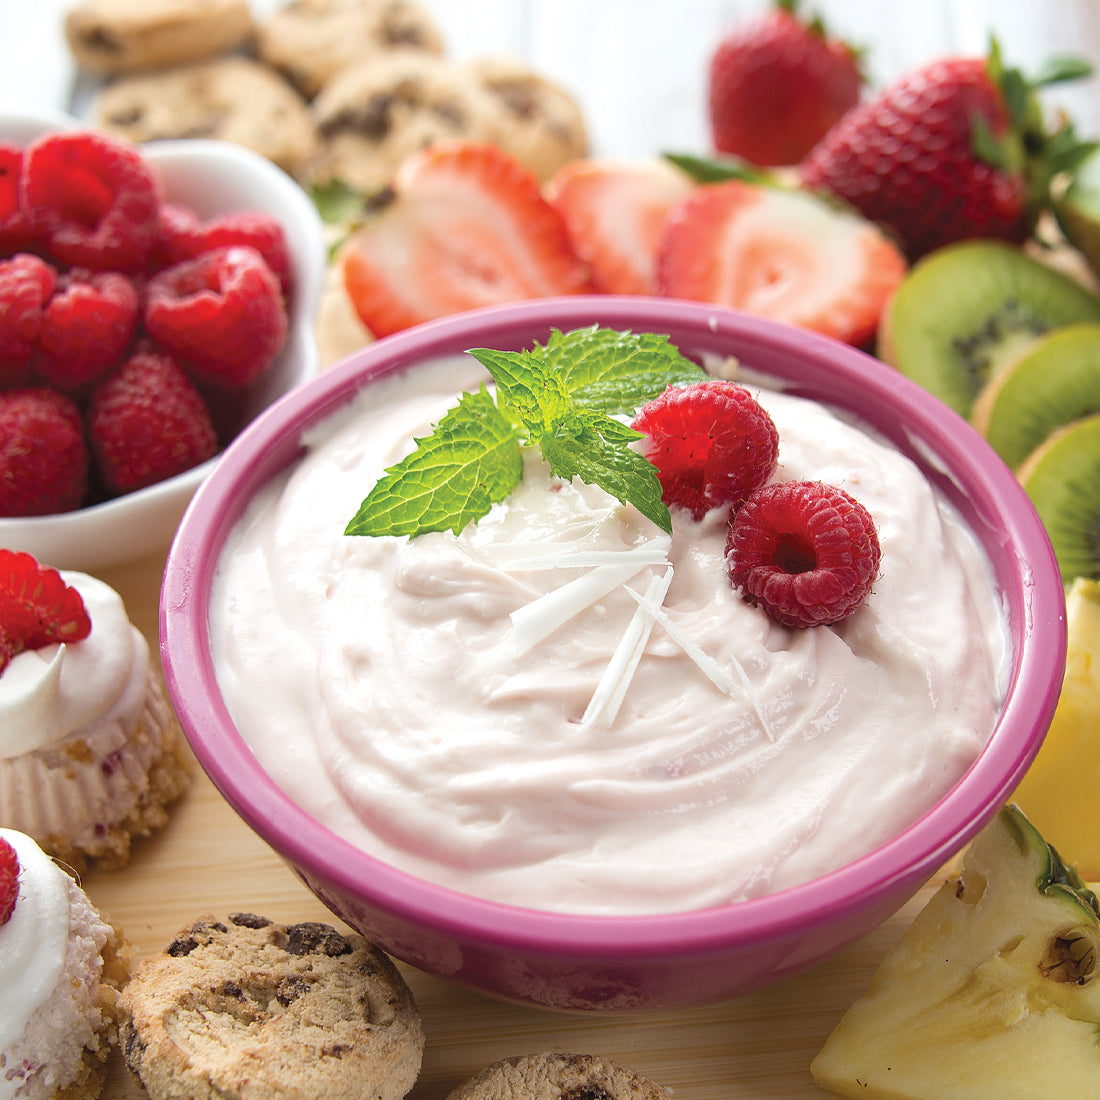 White Chocolate Raspberry Sweet Dip garnished with raspberries and mint.